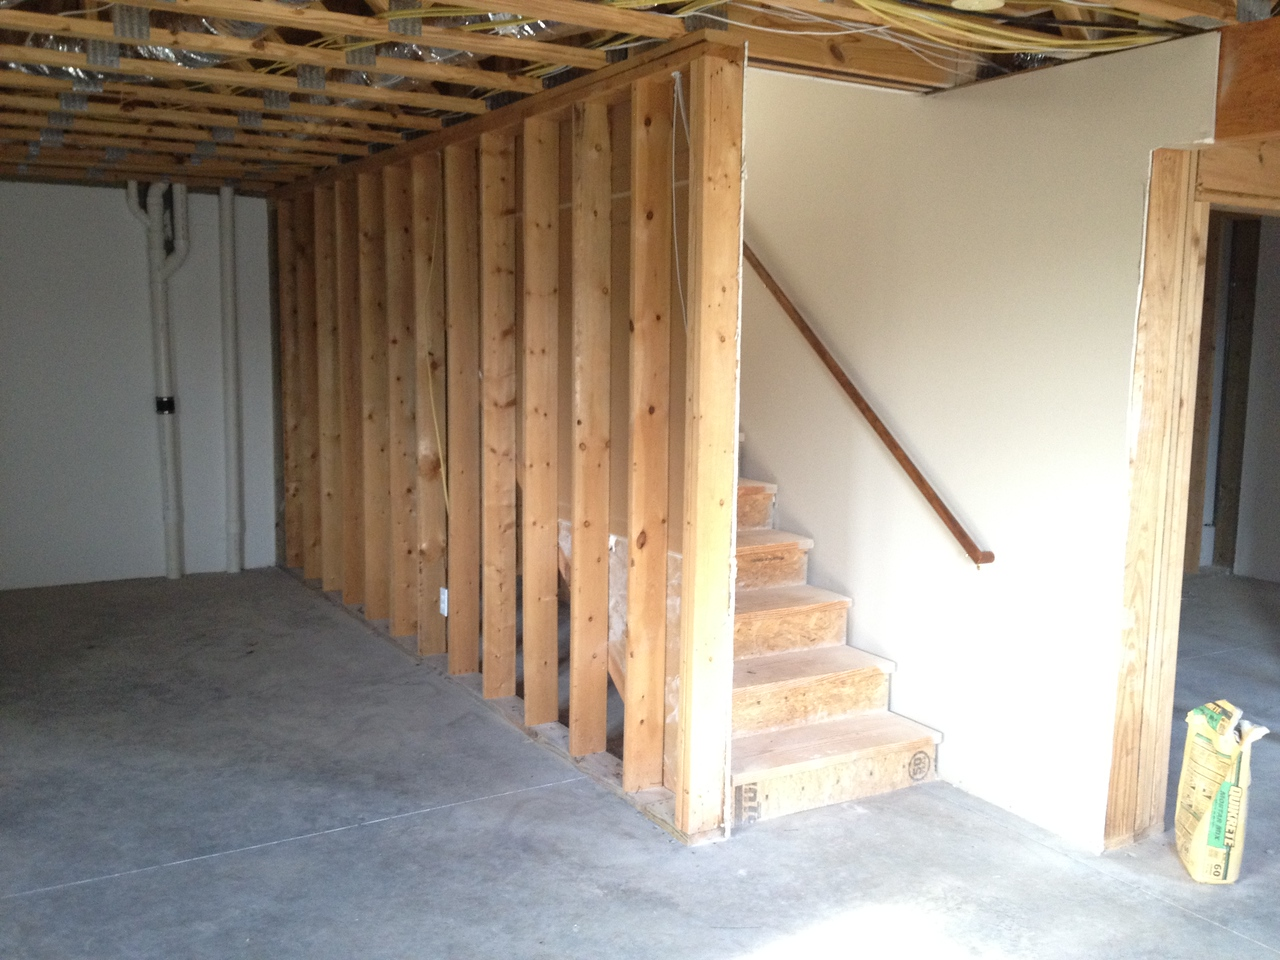 Stairs up from basement